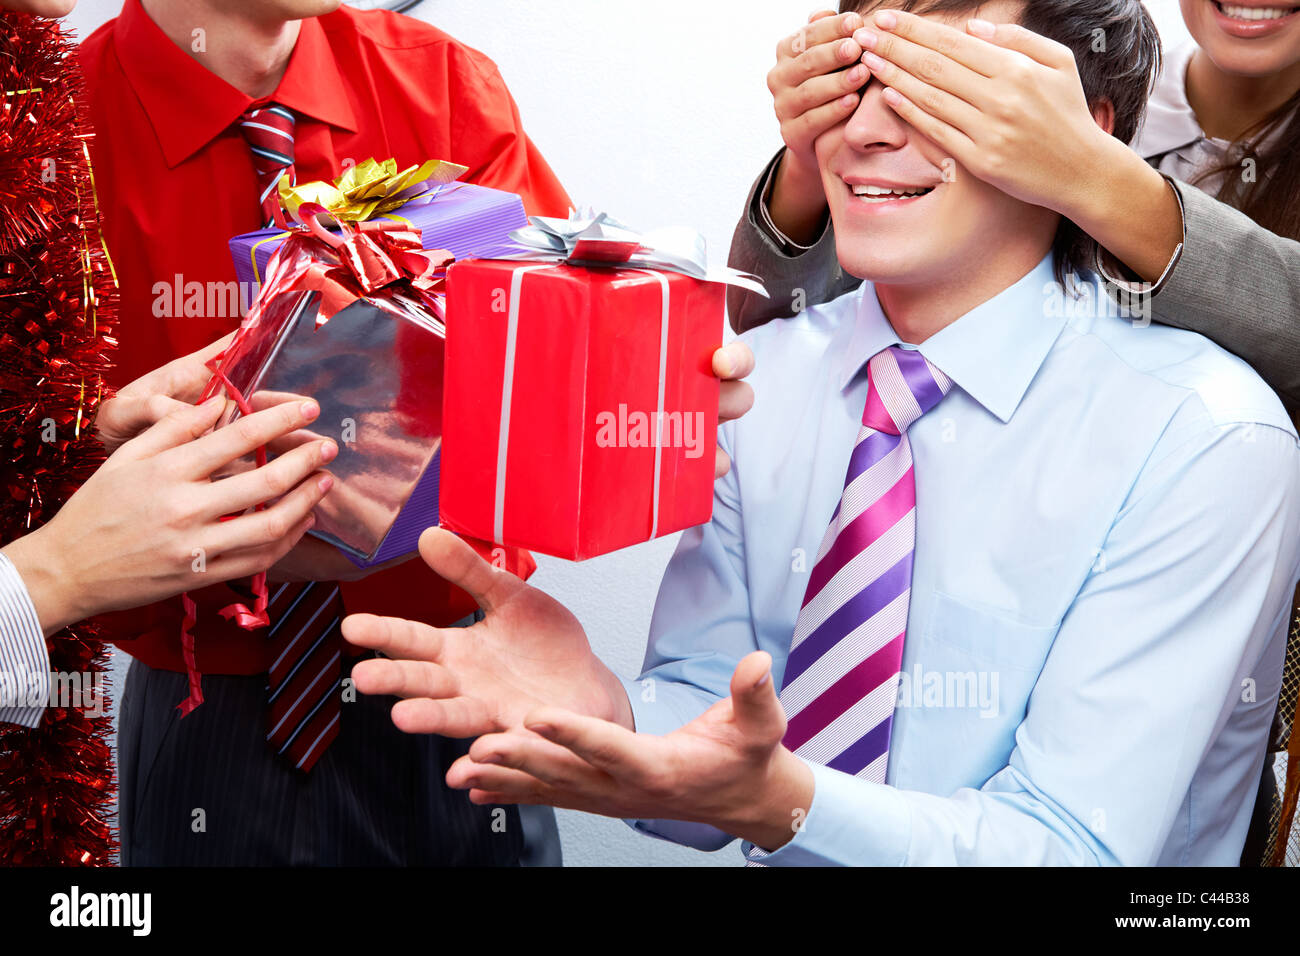 Image of man guessing what present he is going to receive from his colleagues - Stock Image